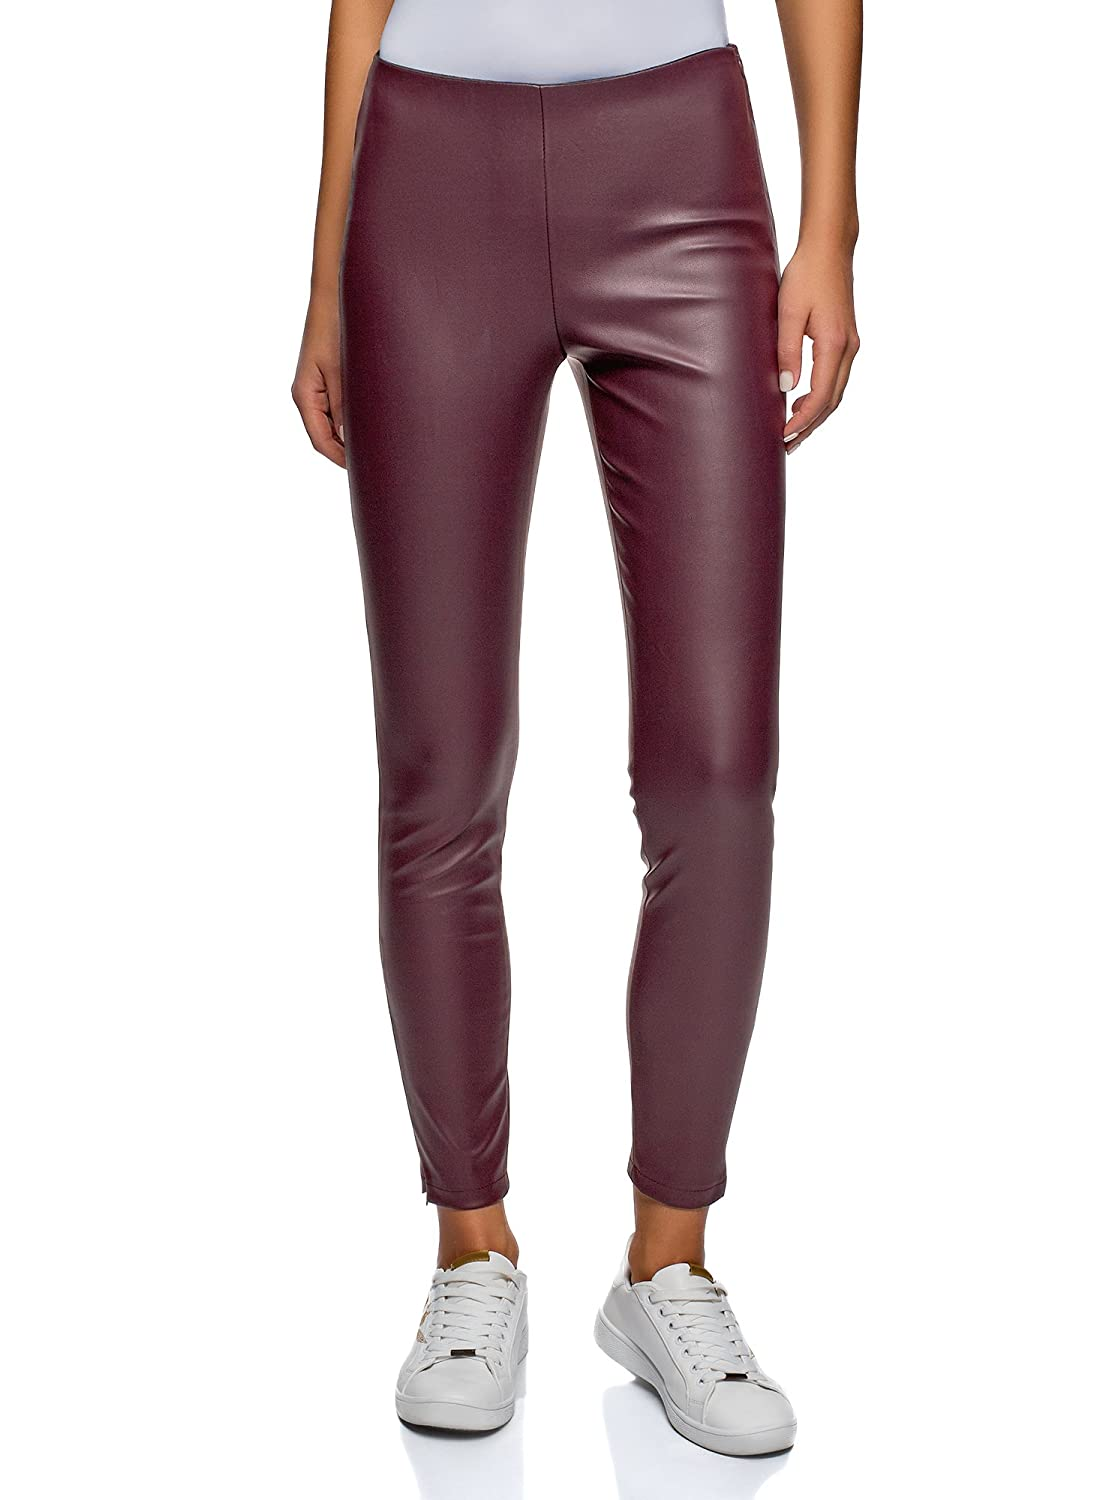 oodji Ultra Womens Faux Leather Zipper Trousers RIFICZECH s.r.o. 18G07001B